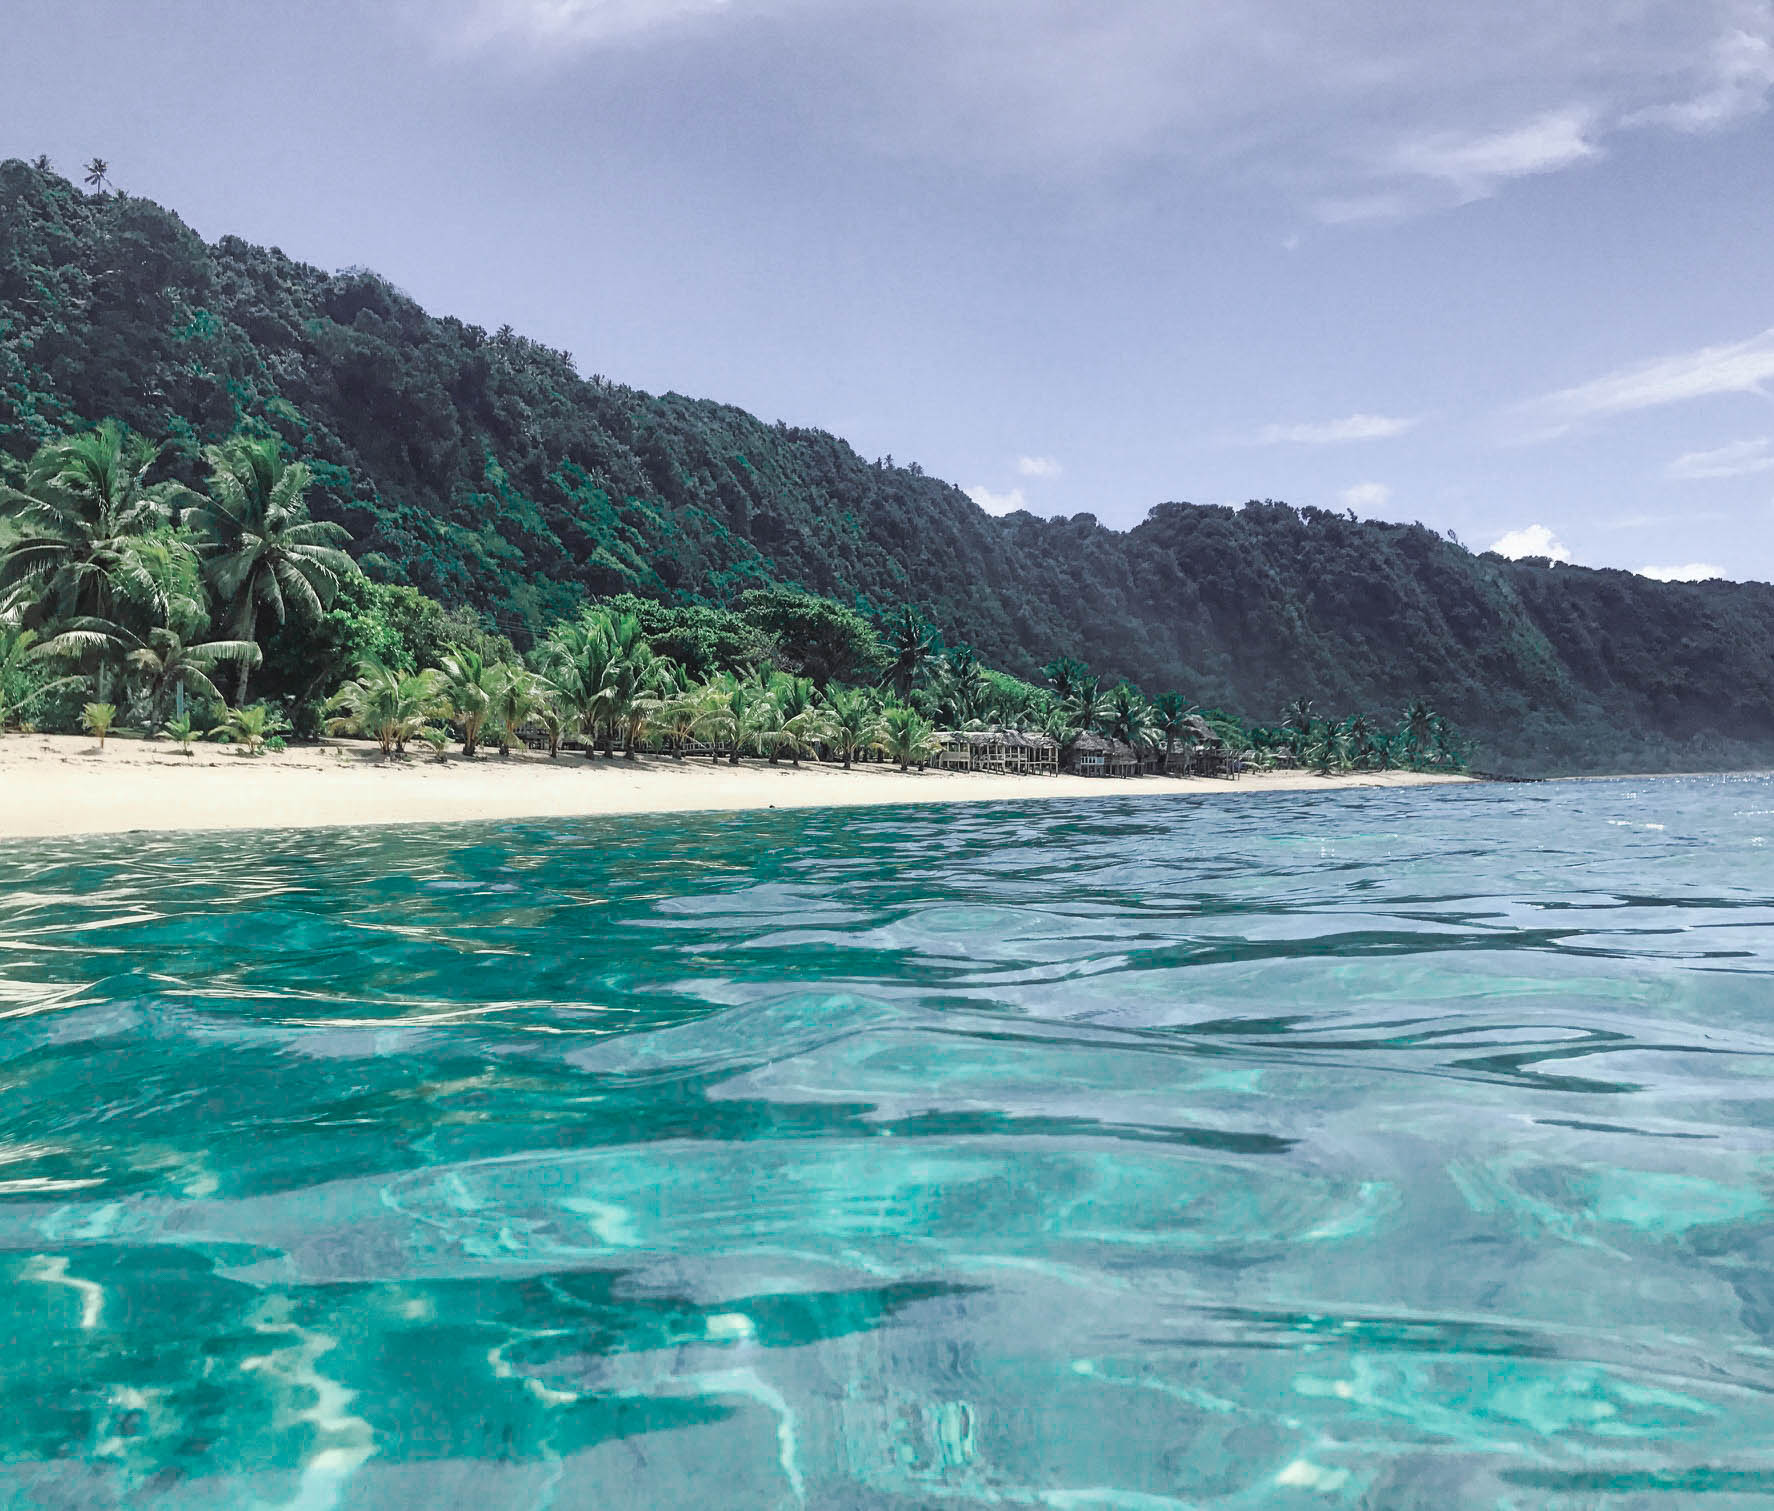 Samoa Beaches: 15 Dreamy Photos Of The Pacific Ocean To Drool Over